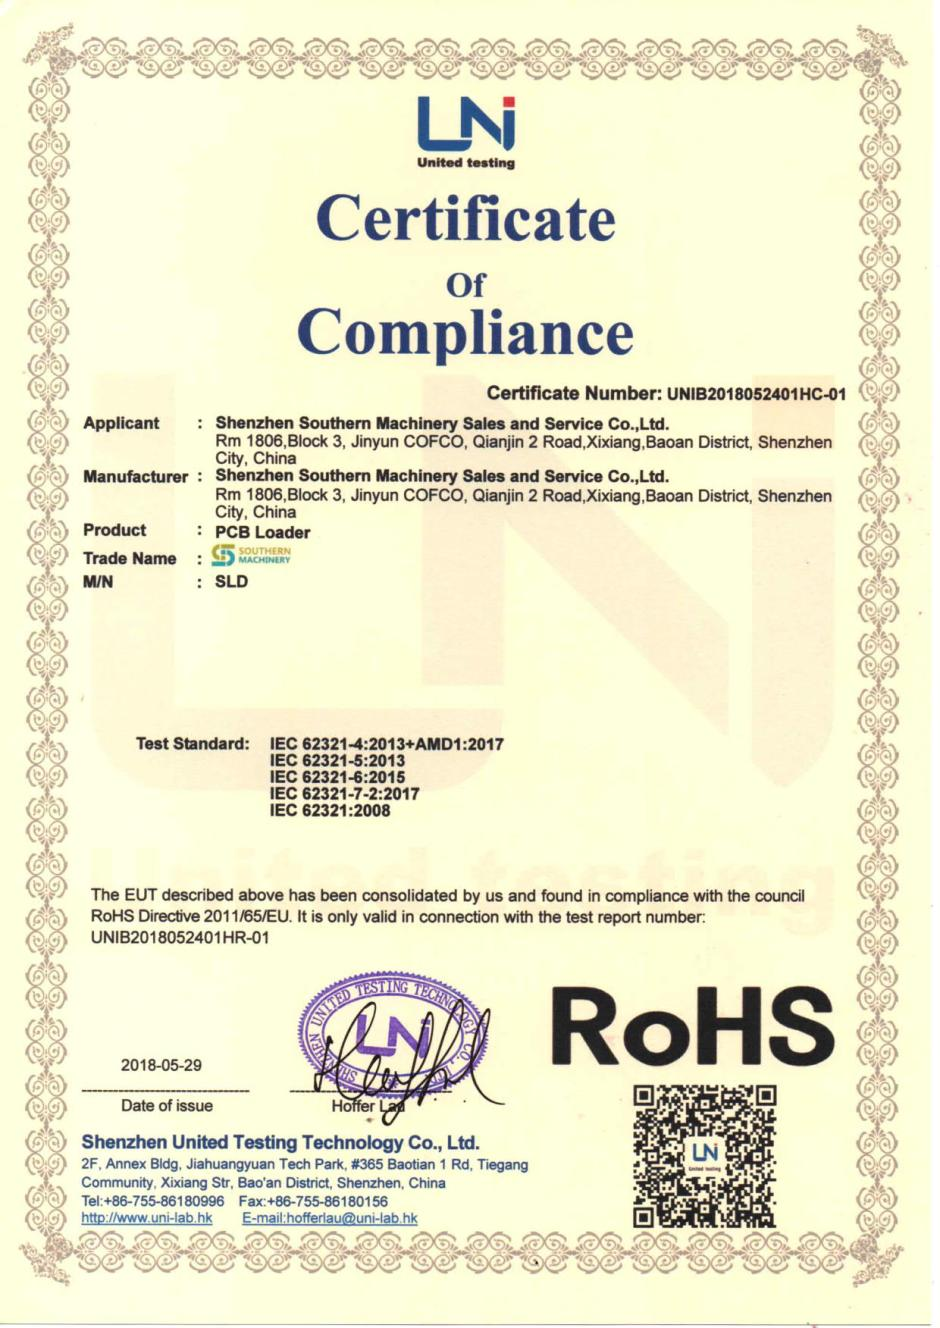 Our southern machinery has passed CE, ROHS certification | SMTHELP